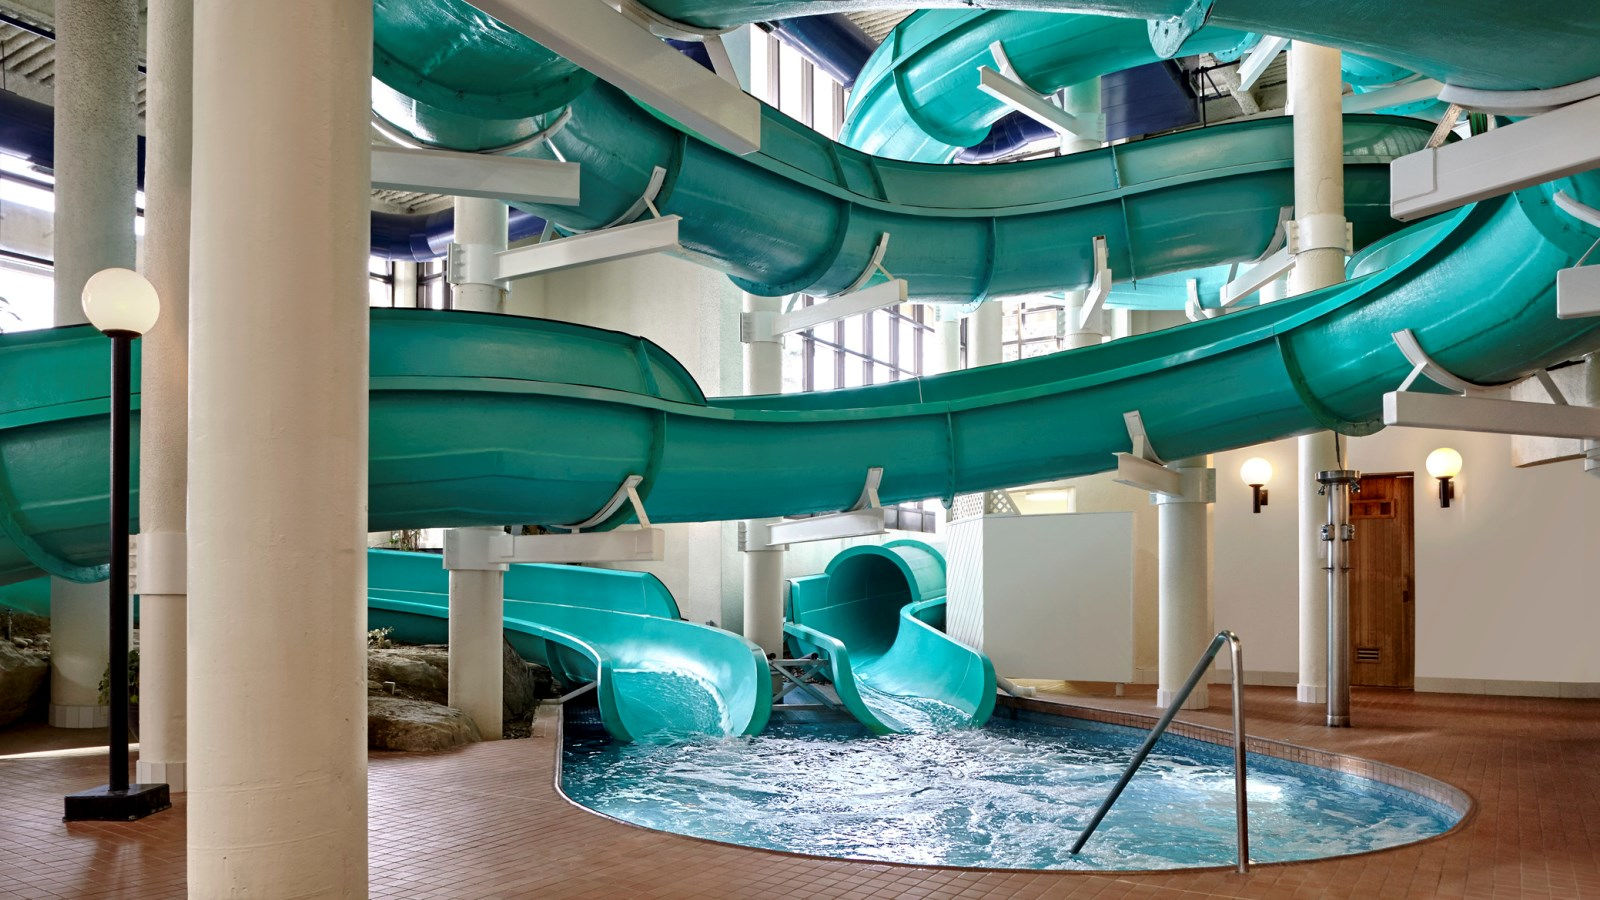 Calgary Family Hotels - Oasis River Country Water Park at Sheraton Cavalier Calgary Hotel